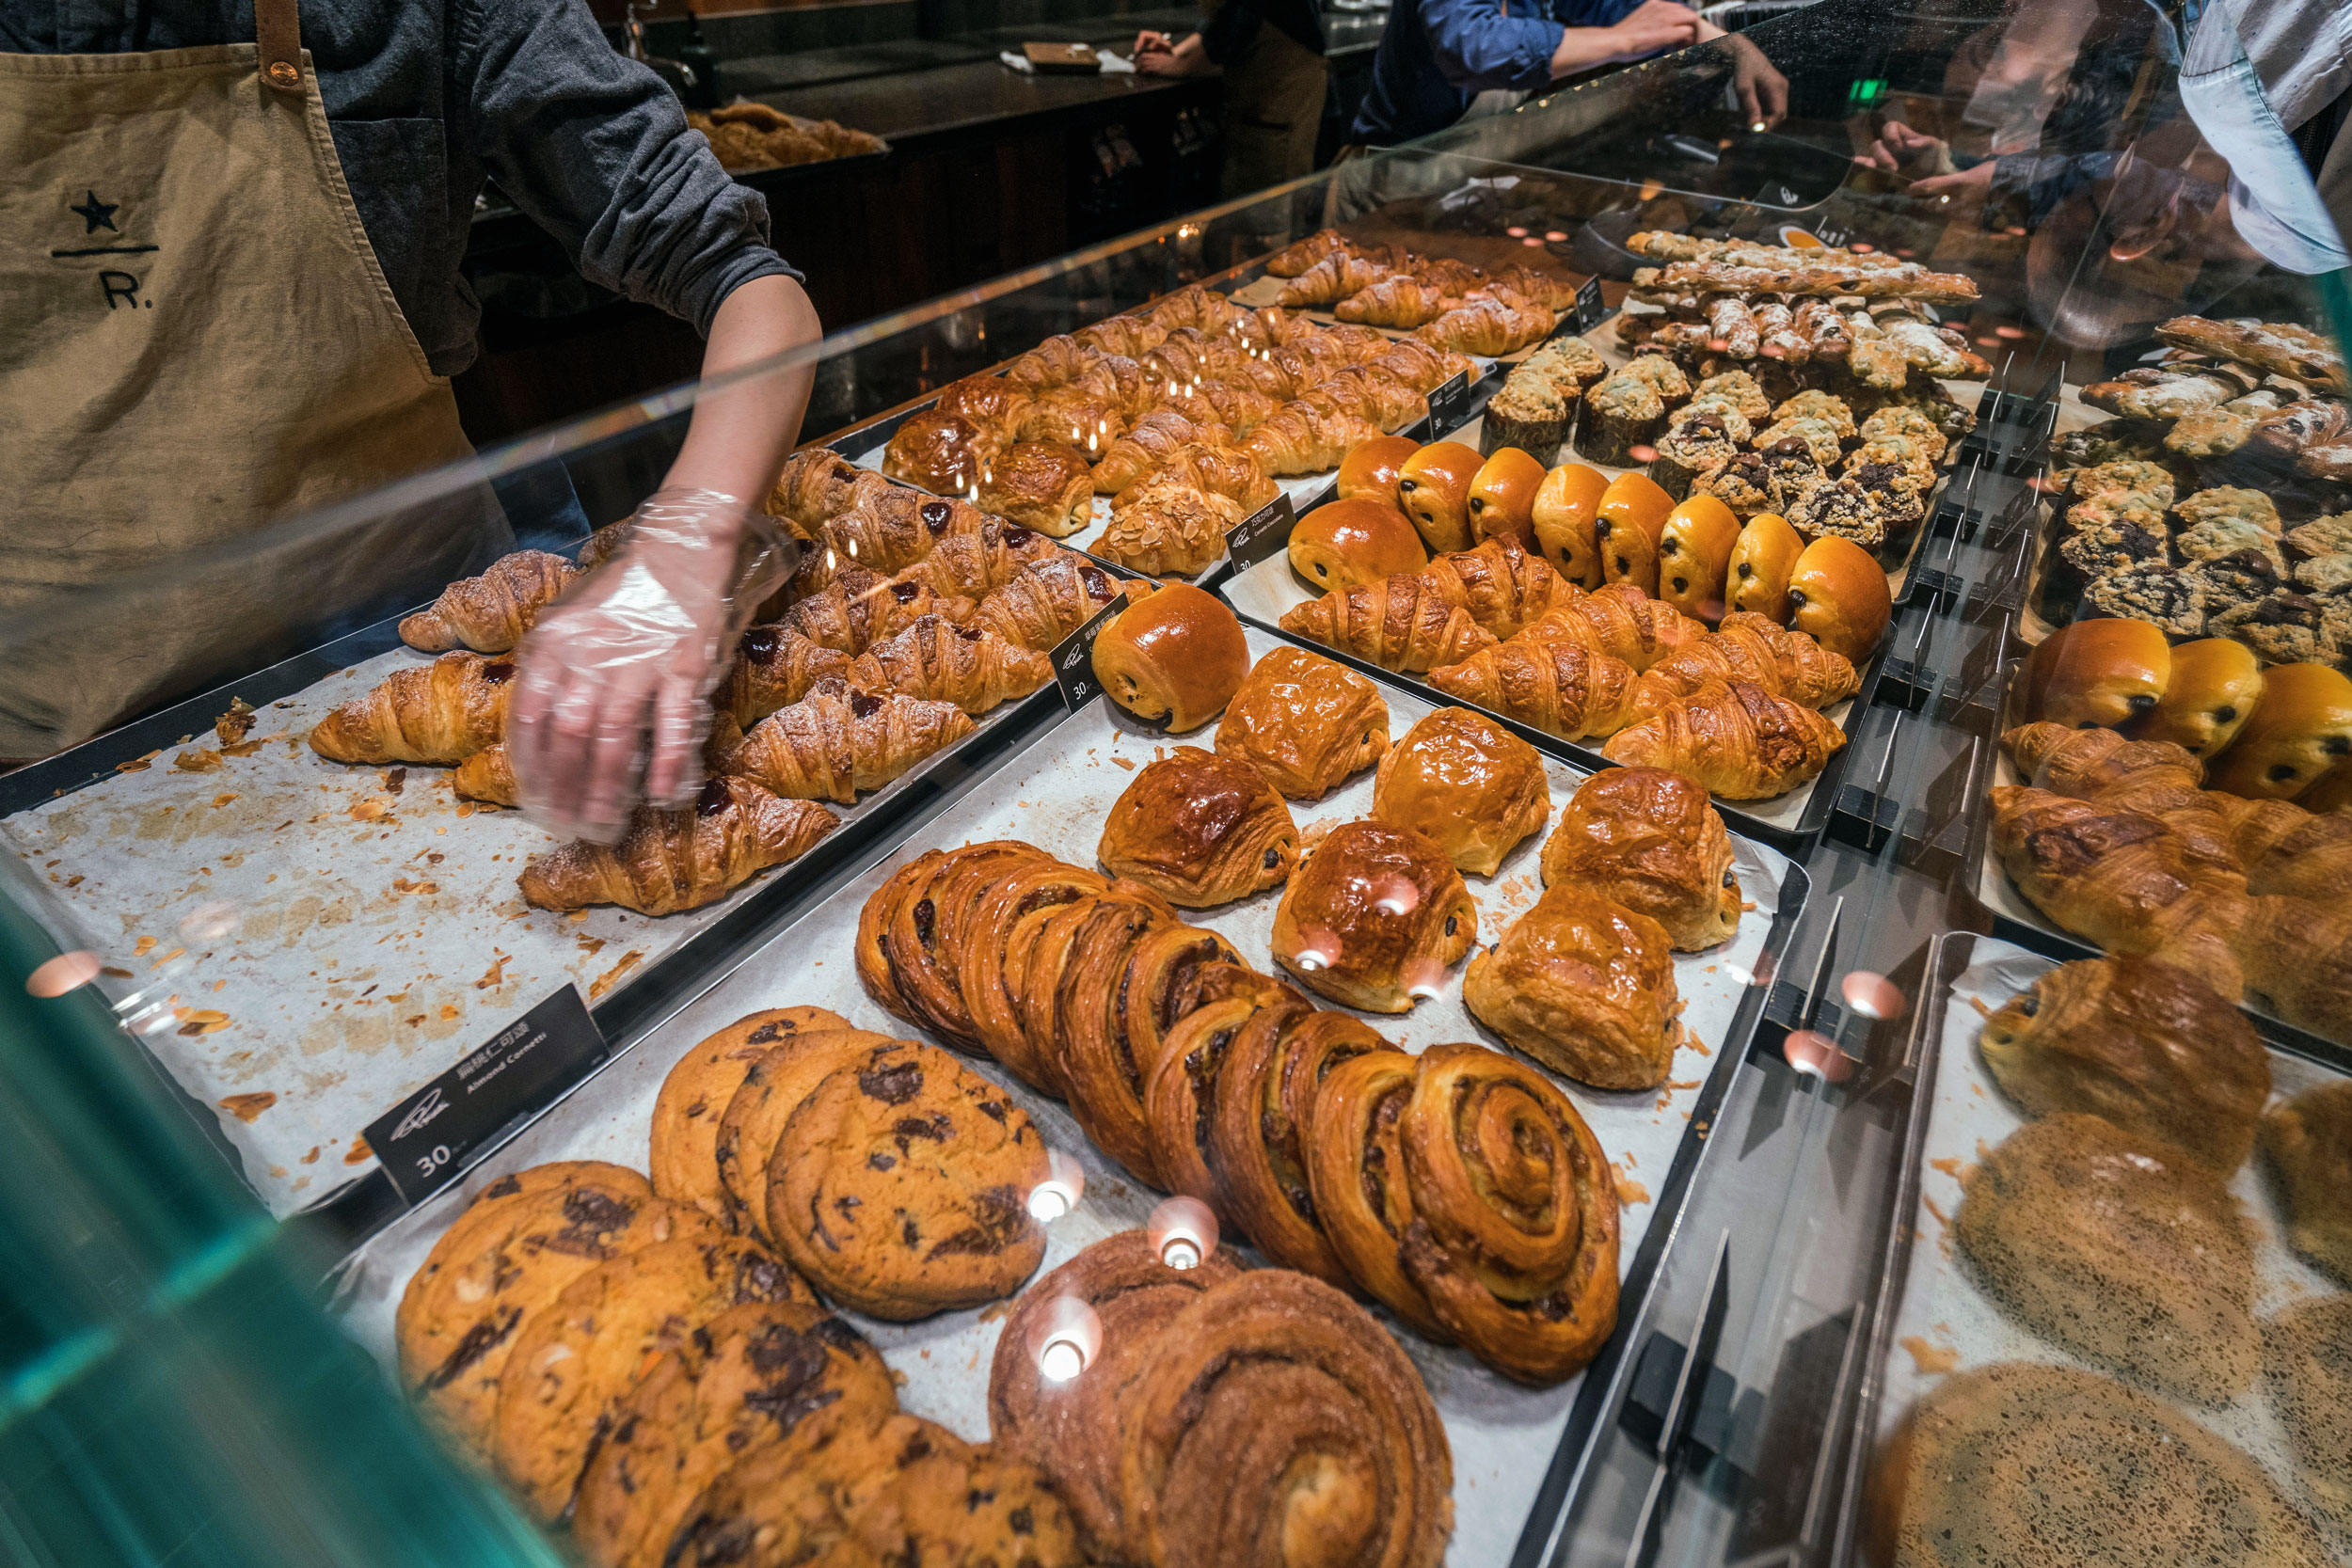 Some pastries and baked goods at Starbucks Reserve Shanghai Roastery